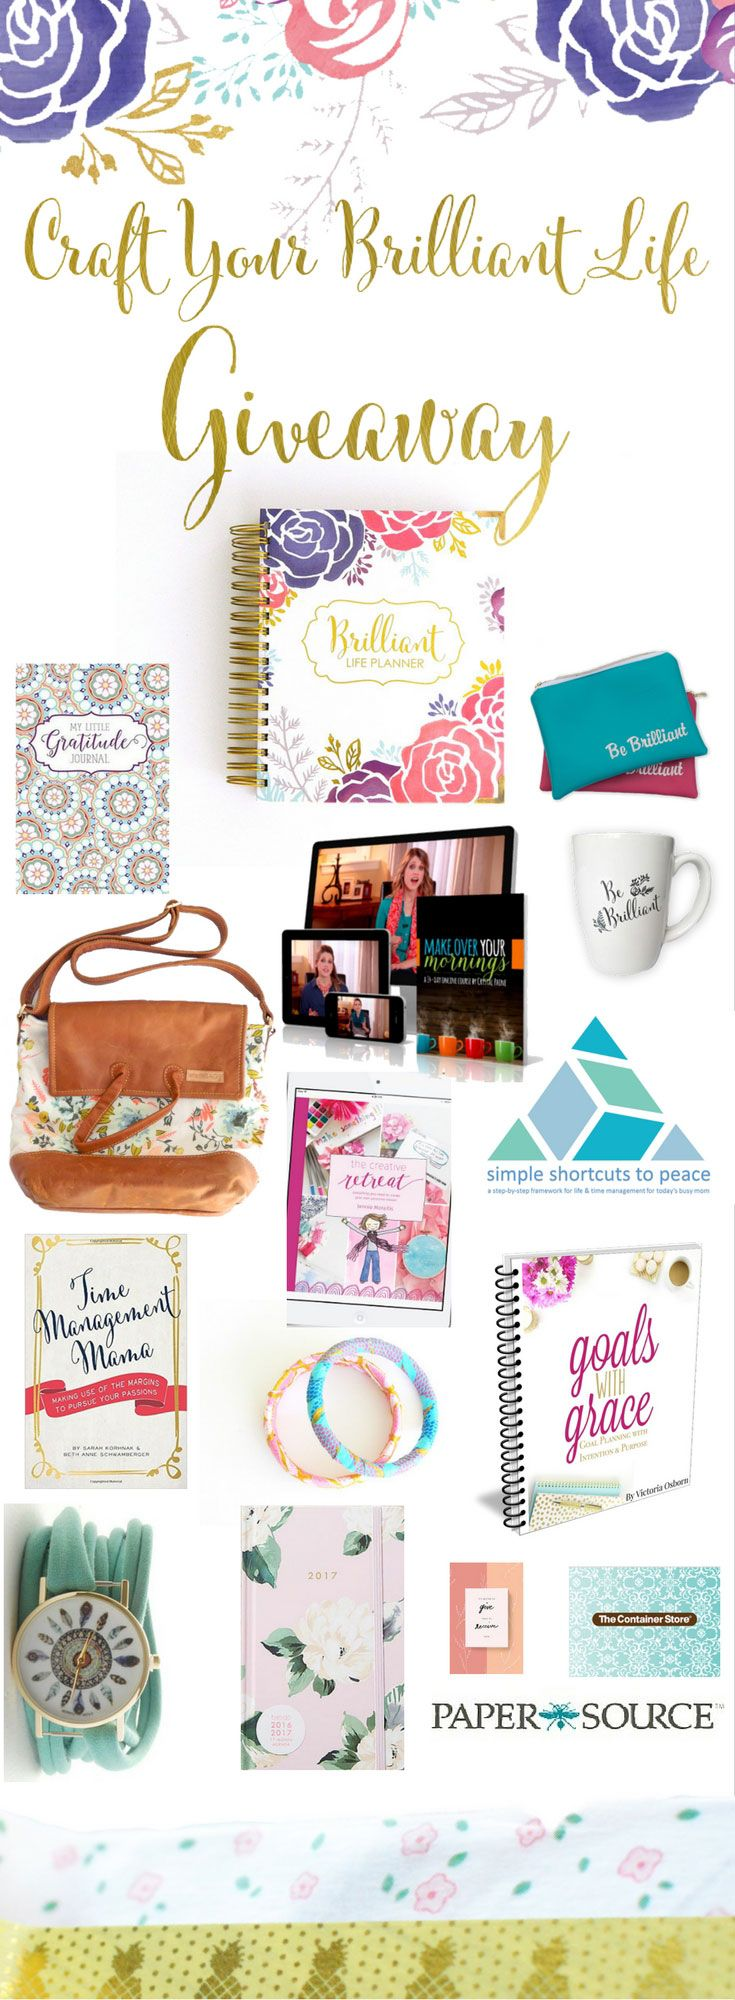 Oh my goodness - squealing over this! HUGE planner + intentional living giveaway with over $1300 in prizes. Win a Brilliant Life Planner, Better Life Bag, $200 to The Container Store, Anthropologie planner, and SOO much more. | 2017 planners for women